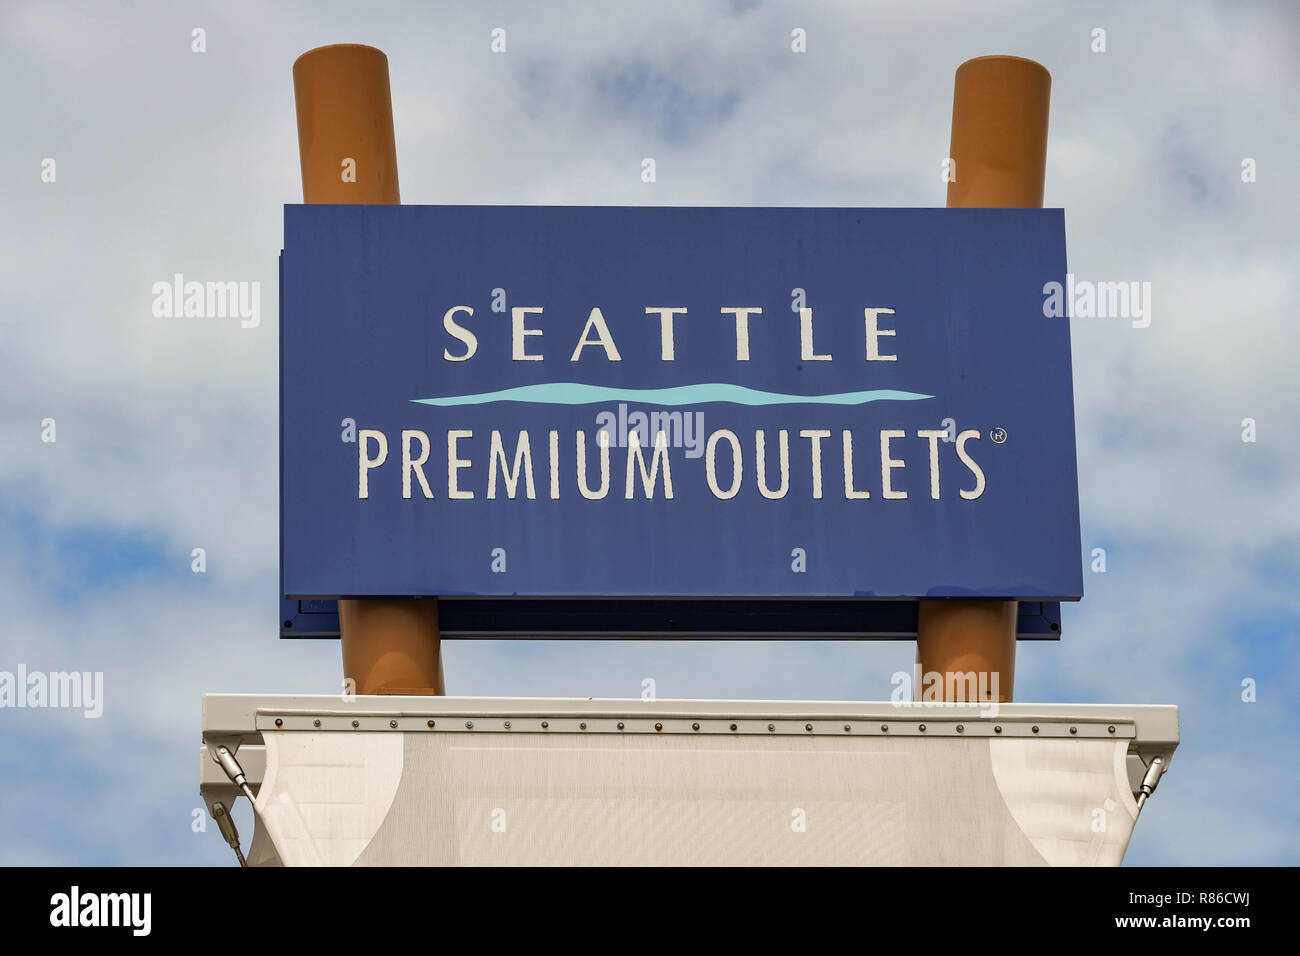 SEATTLE, WA, USA - JUNE 2018: Large sign outside the Premium Outlets shopping mall at Tulalip near Seattle. - Stock Image